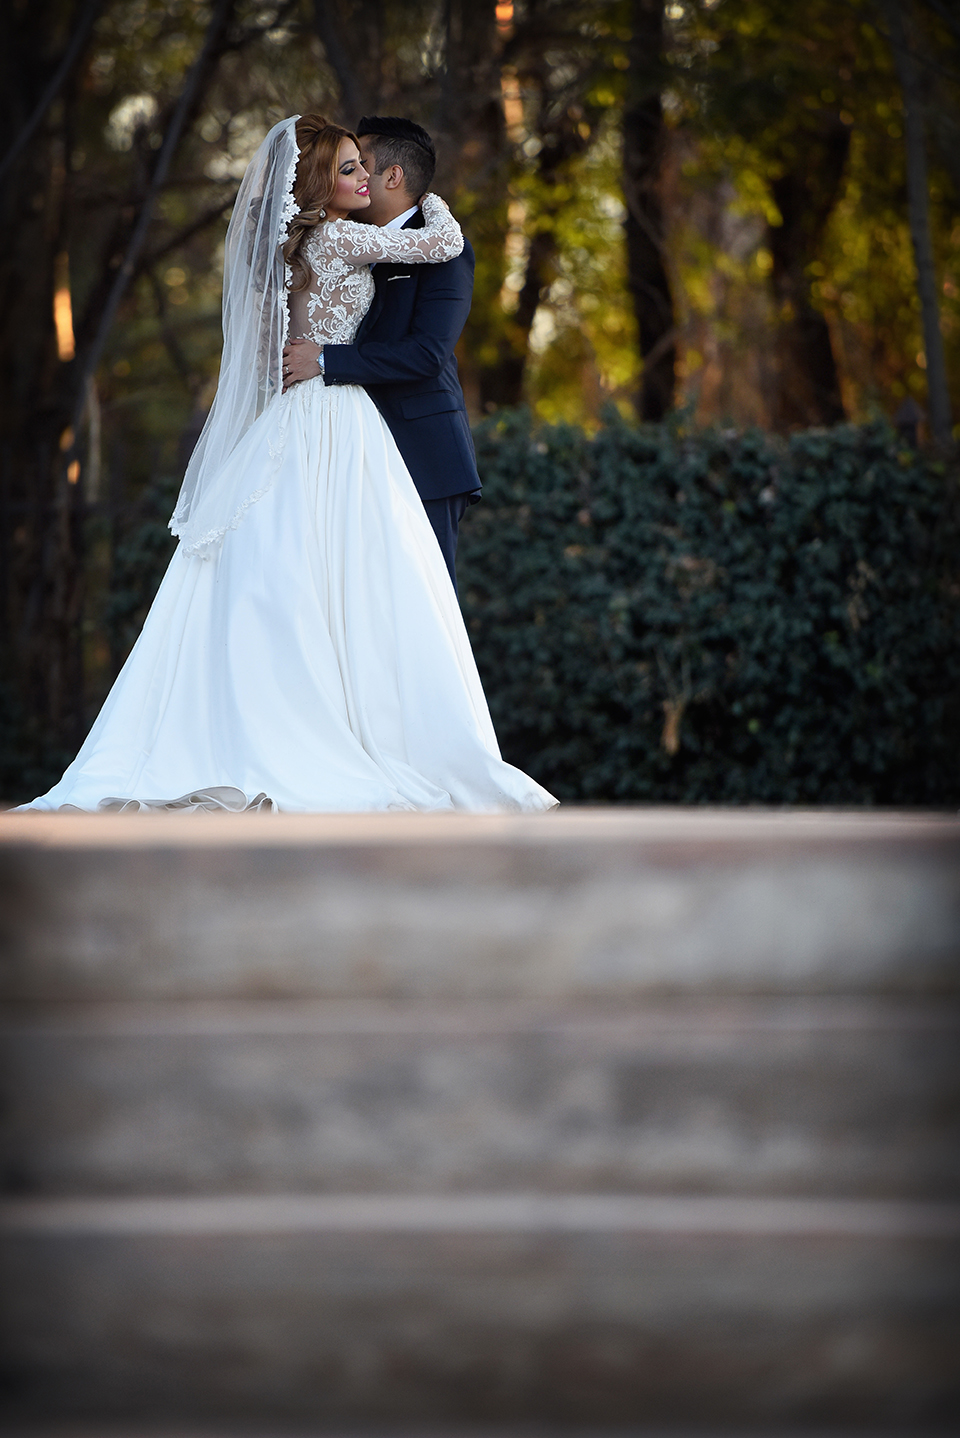 dubai-wedding-photographers-best-wedding-photographers-in-the-world-estilo-photography-stylish-wedding-photography-velmore-wedding-muslim-wedding-johannesburg-gauteng-photographers-025.jpg